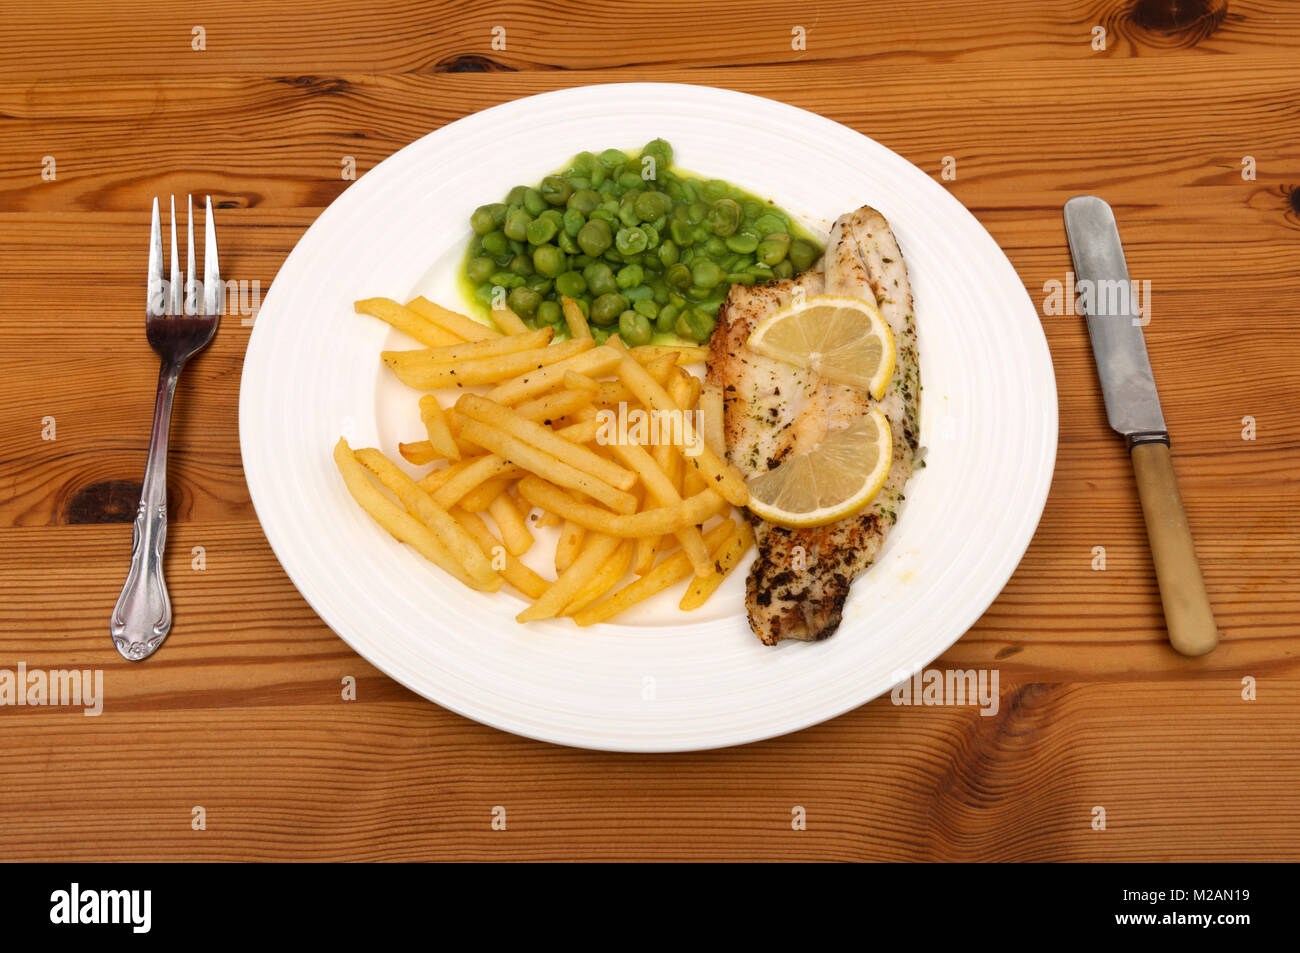 Sea Bass with chips and processed peas - Stock Image